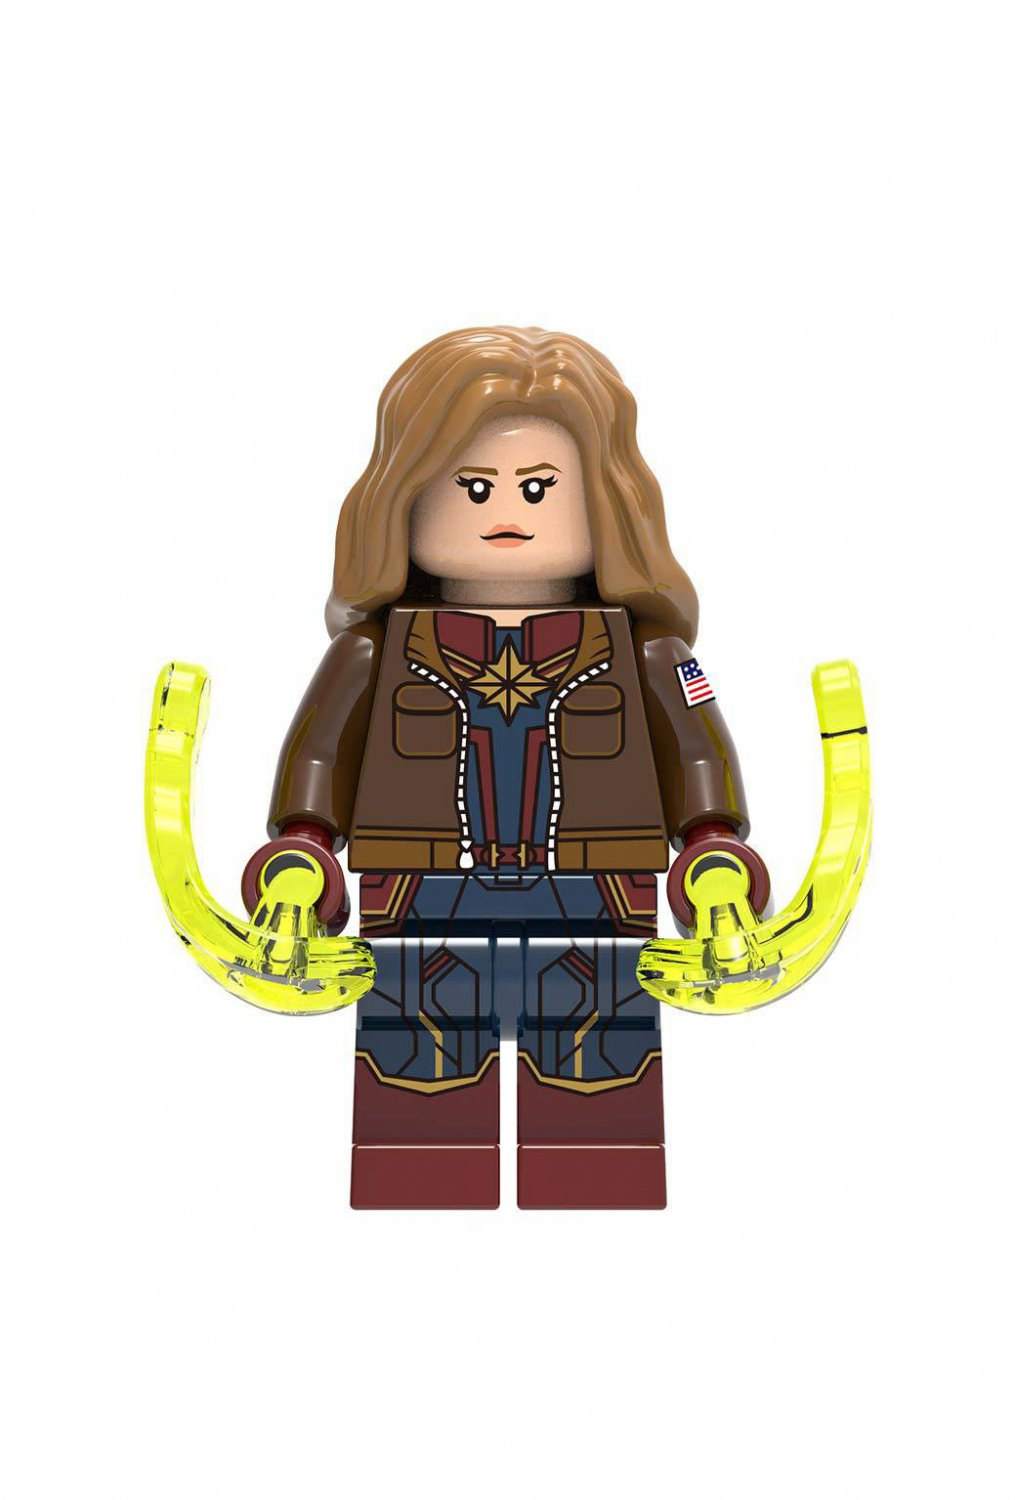 Captain Marvel Flying suit Minifigures Lego Compatible Toy